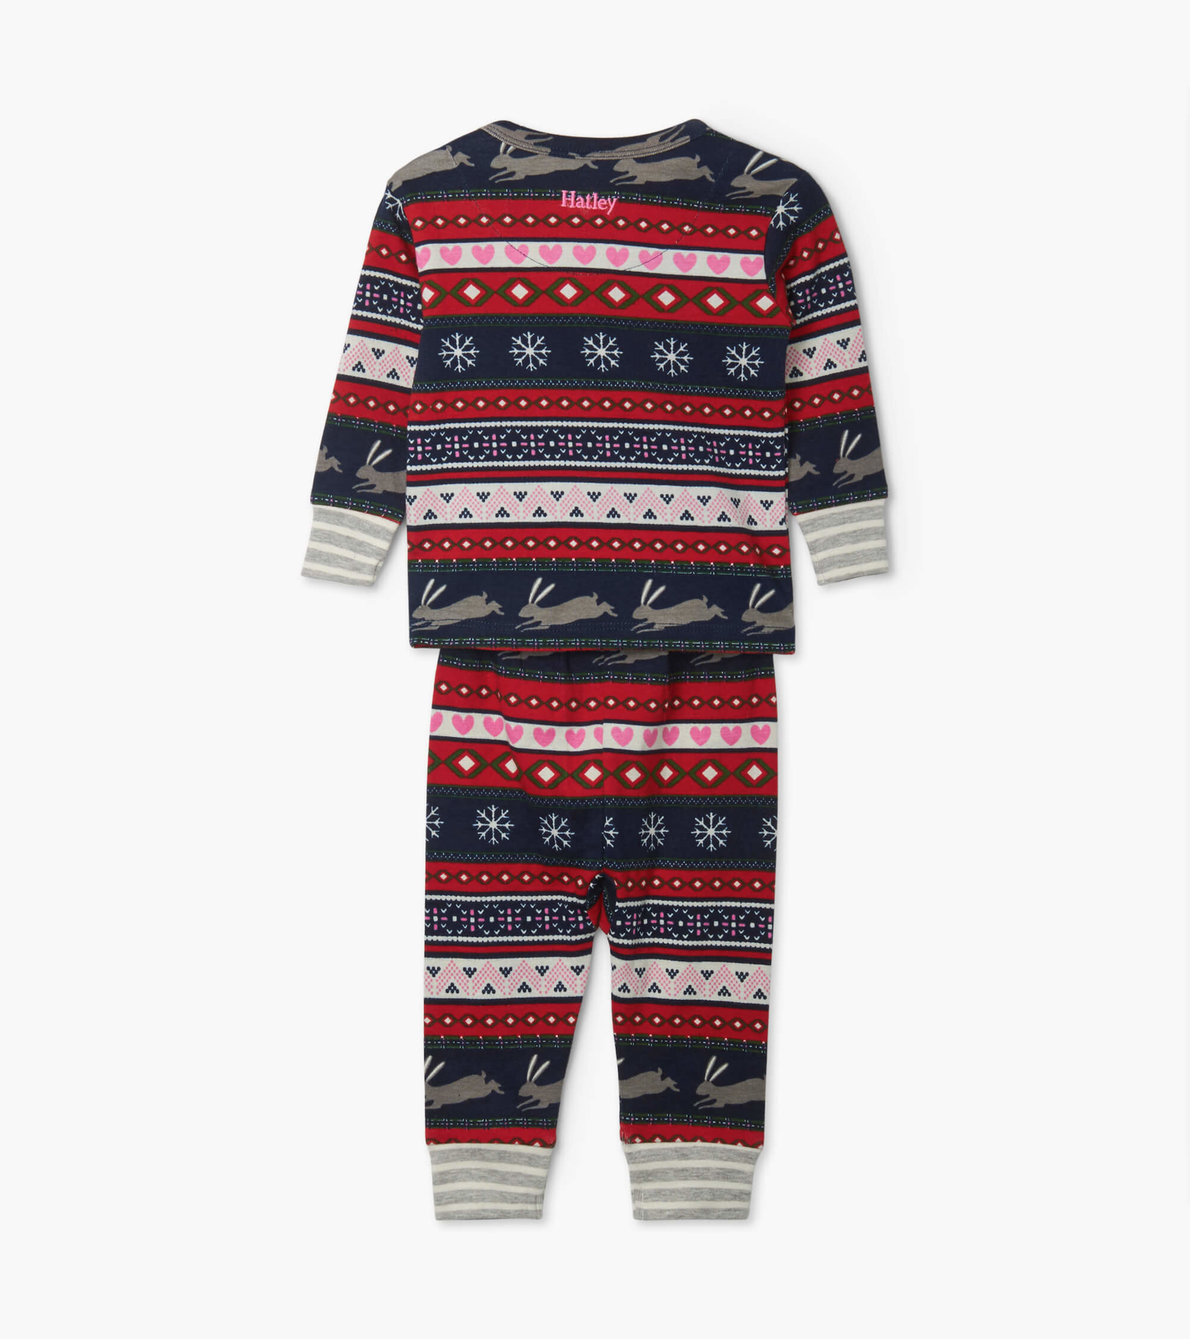 View larger image of Fair Isle Bunnies Organic Cotton Baby Pajama Set